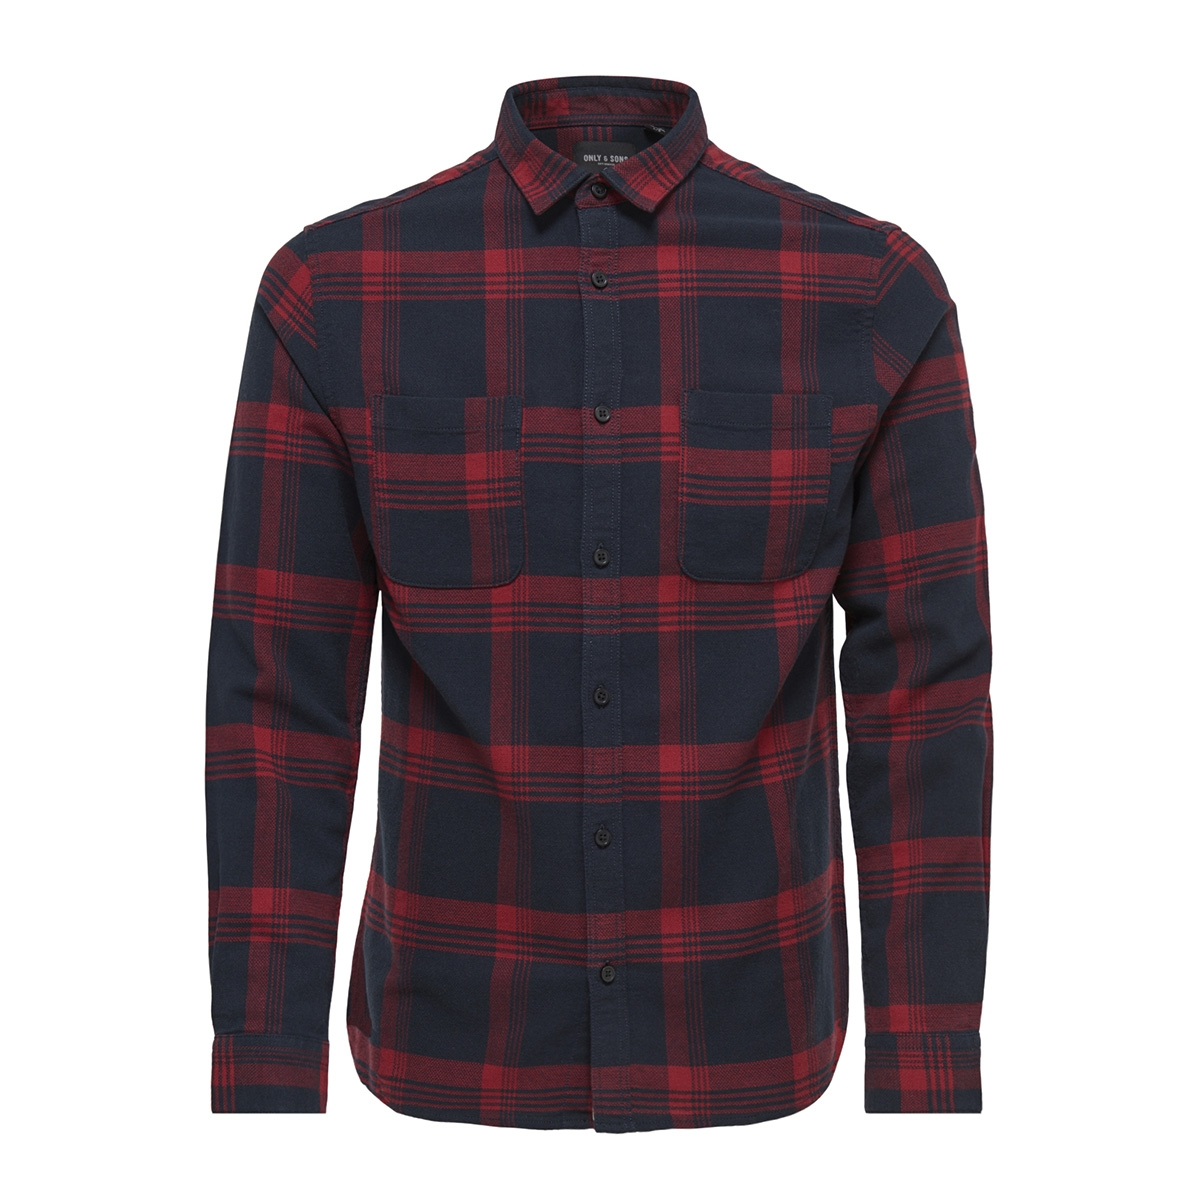 onswillem ls checked shirt noos 22011713 only & sons overhemd rhubarb